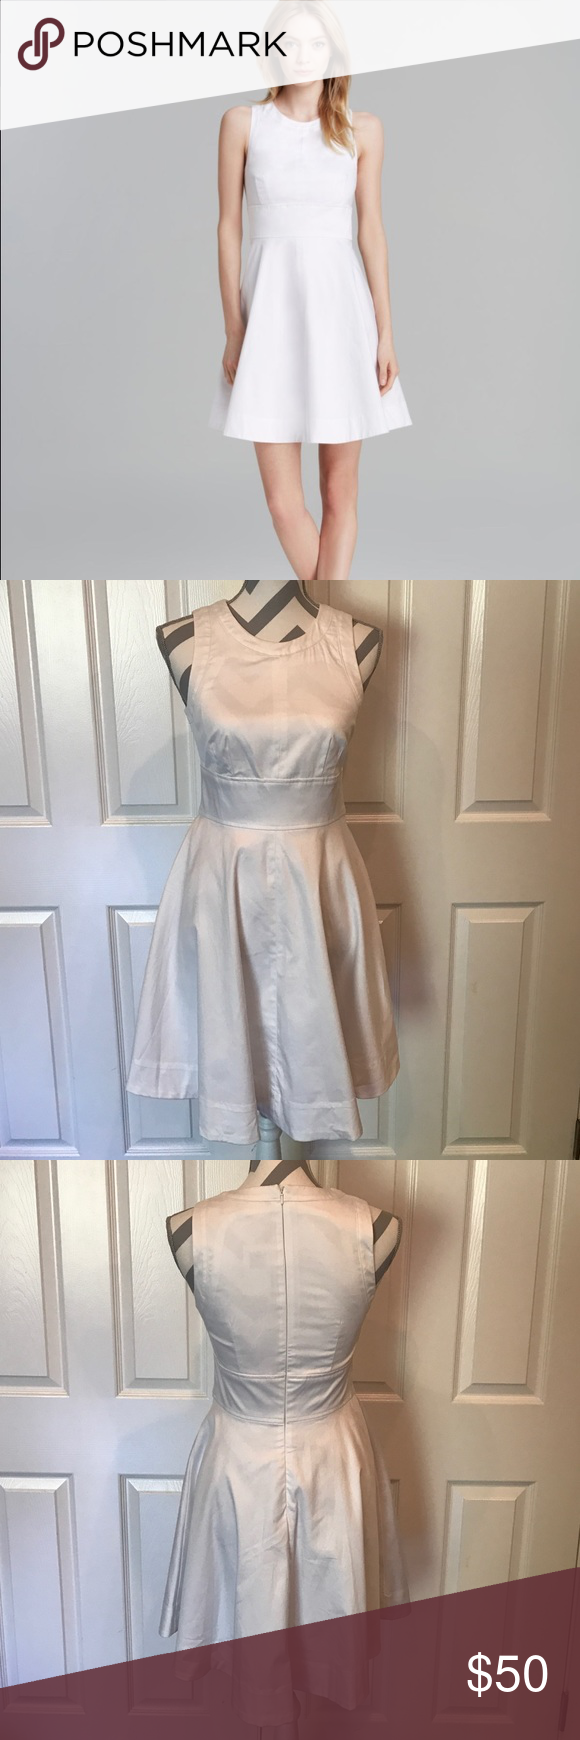 """French Connection Fit & Flare Dress NWT. Never worn. Bought at Bloomingdales. Total length is 35"""". Length from bottom of waistband is 19.5"""". Bust 34"""". Waist 27"""". Noticed very minor mark near right bust when photographing to sell--not noticeable. Looks like it will wash out. Entire dress is fully lined. Super cute! French Connection Dresses Midi"""